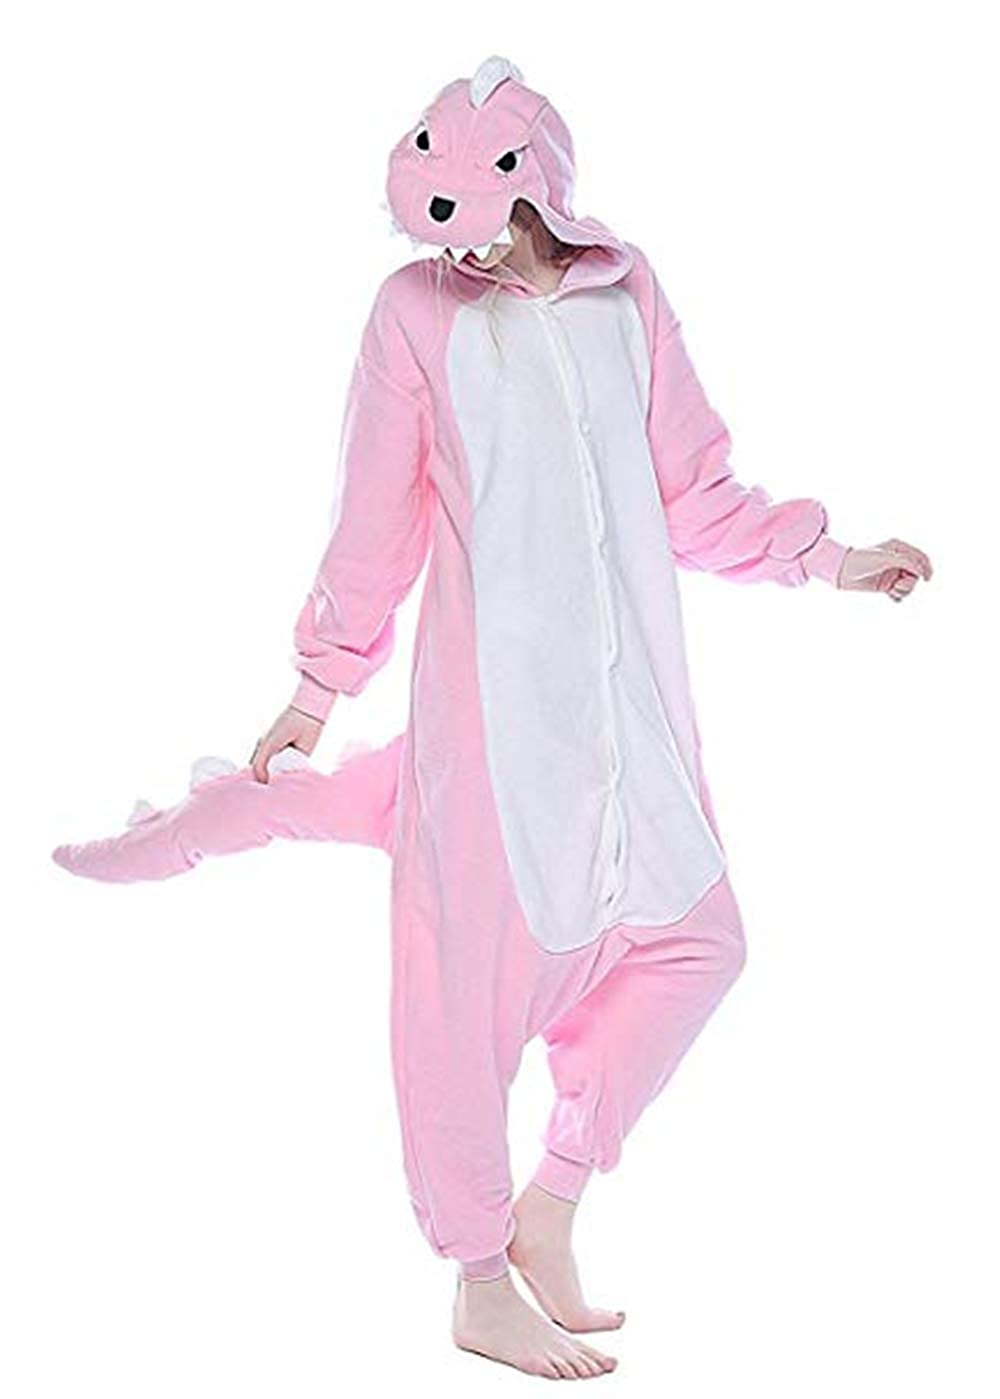 Unisex Adult Kids Dinosaur Onesie Animal One Piece Pajamas Halloween Costume